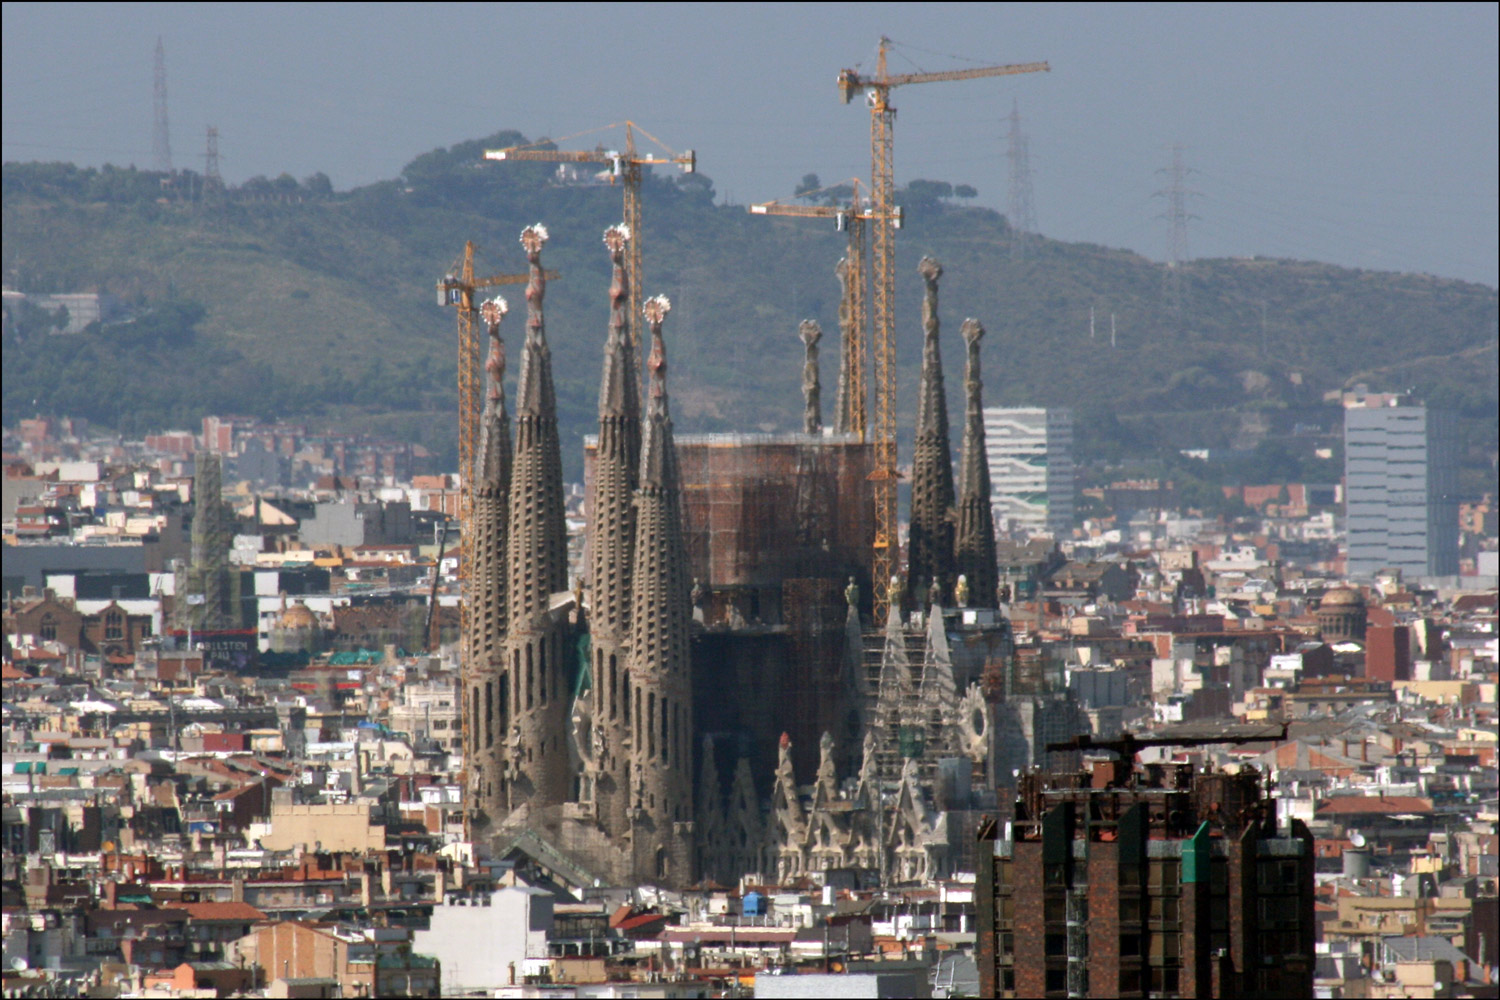 Mountain genealogists september 2011 for La sagrada familia barcelona spain